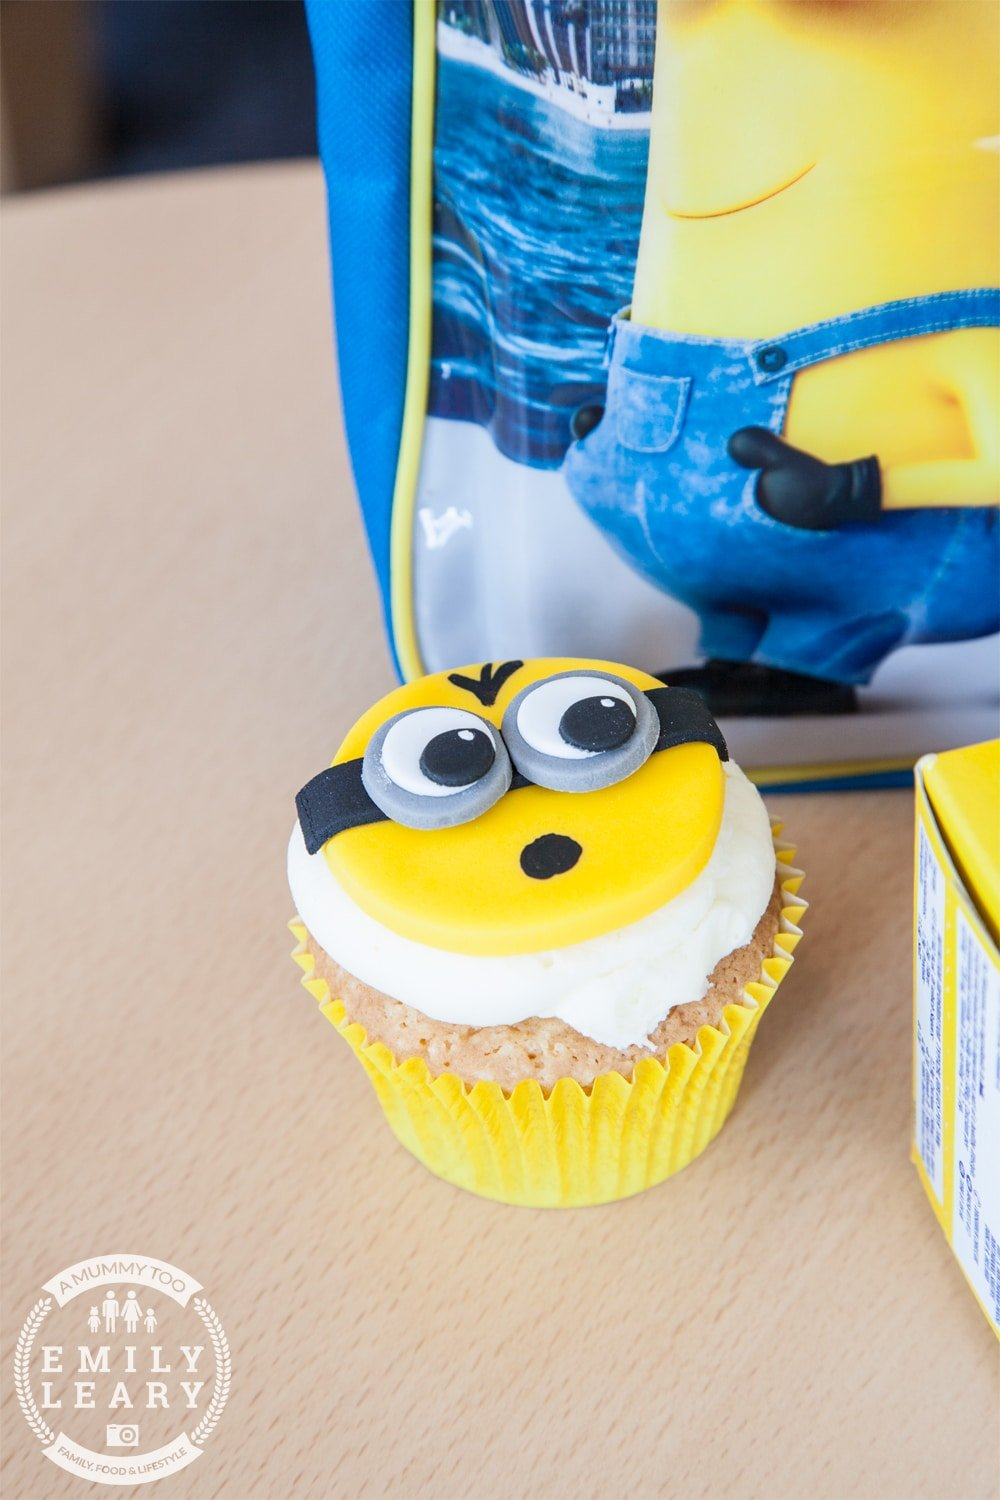 ZSL-Whipsnade-Minions-Frubes-Cake